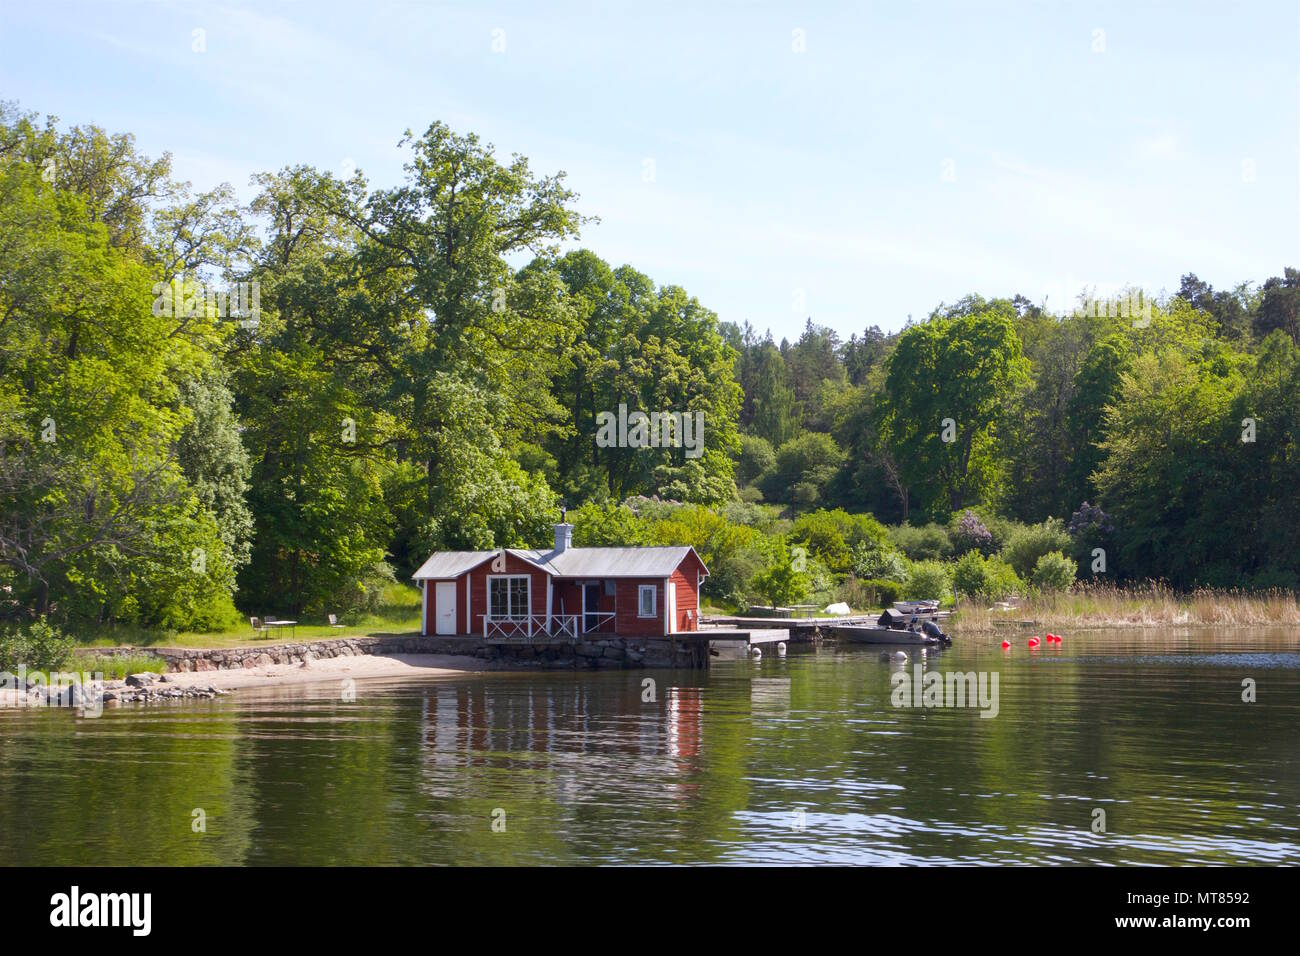 Summer house in the Stockholm Archipelago - Stock Image